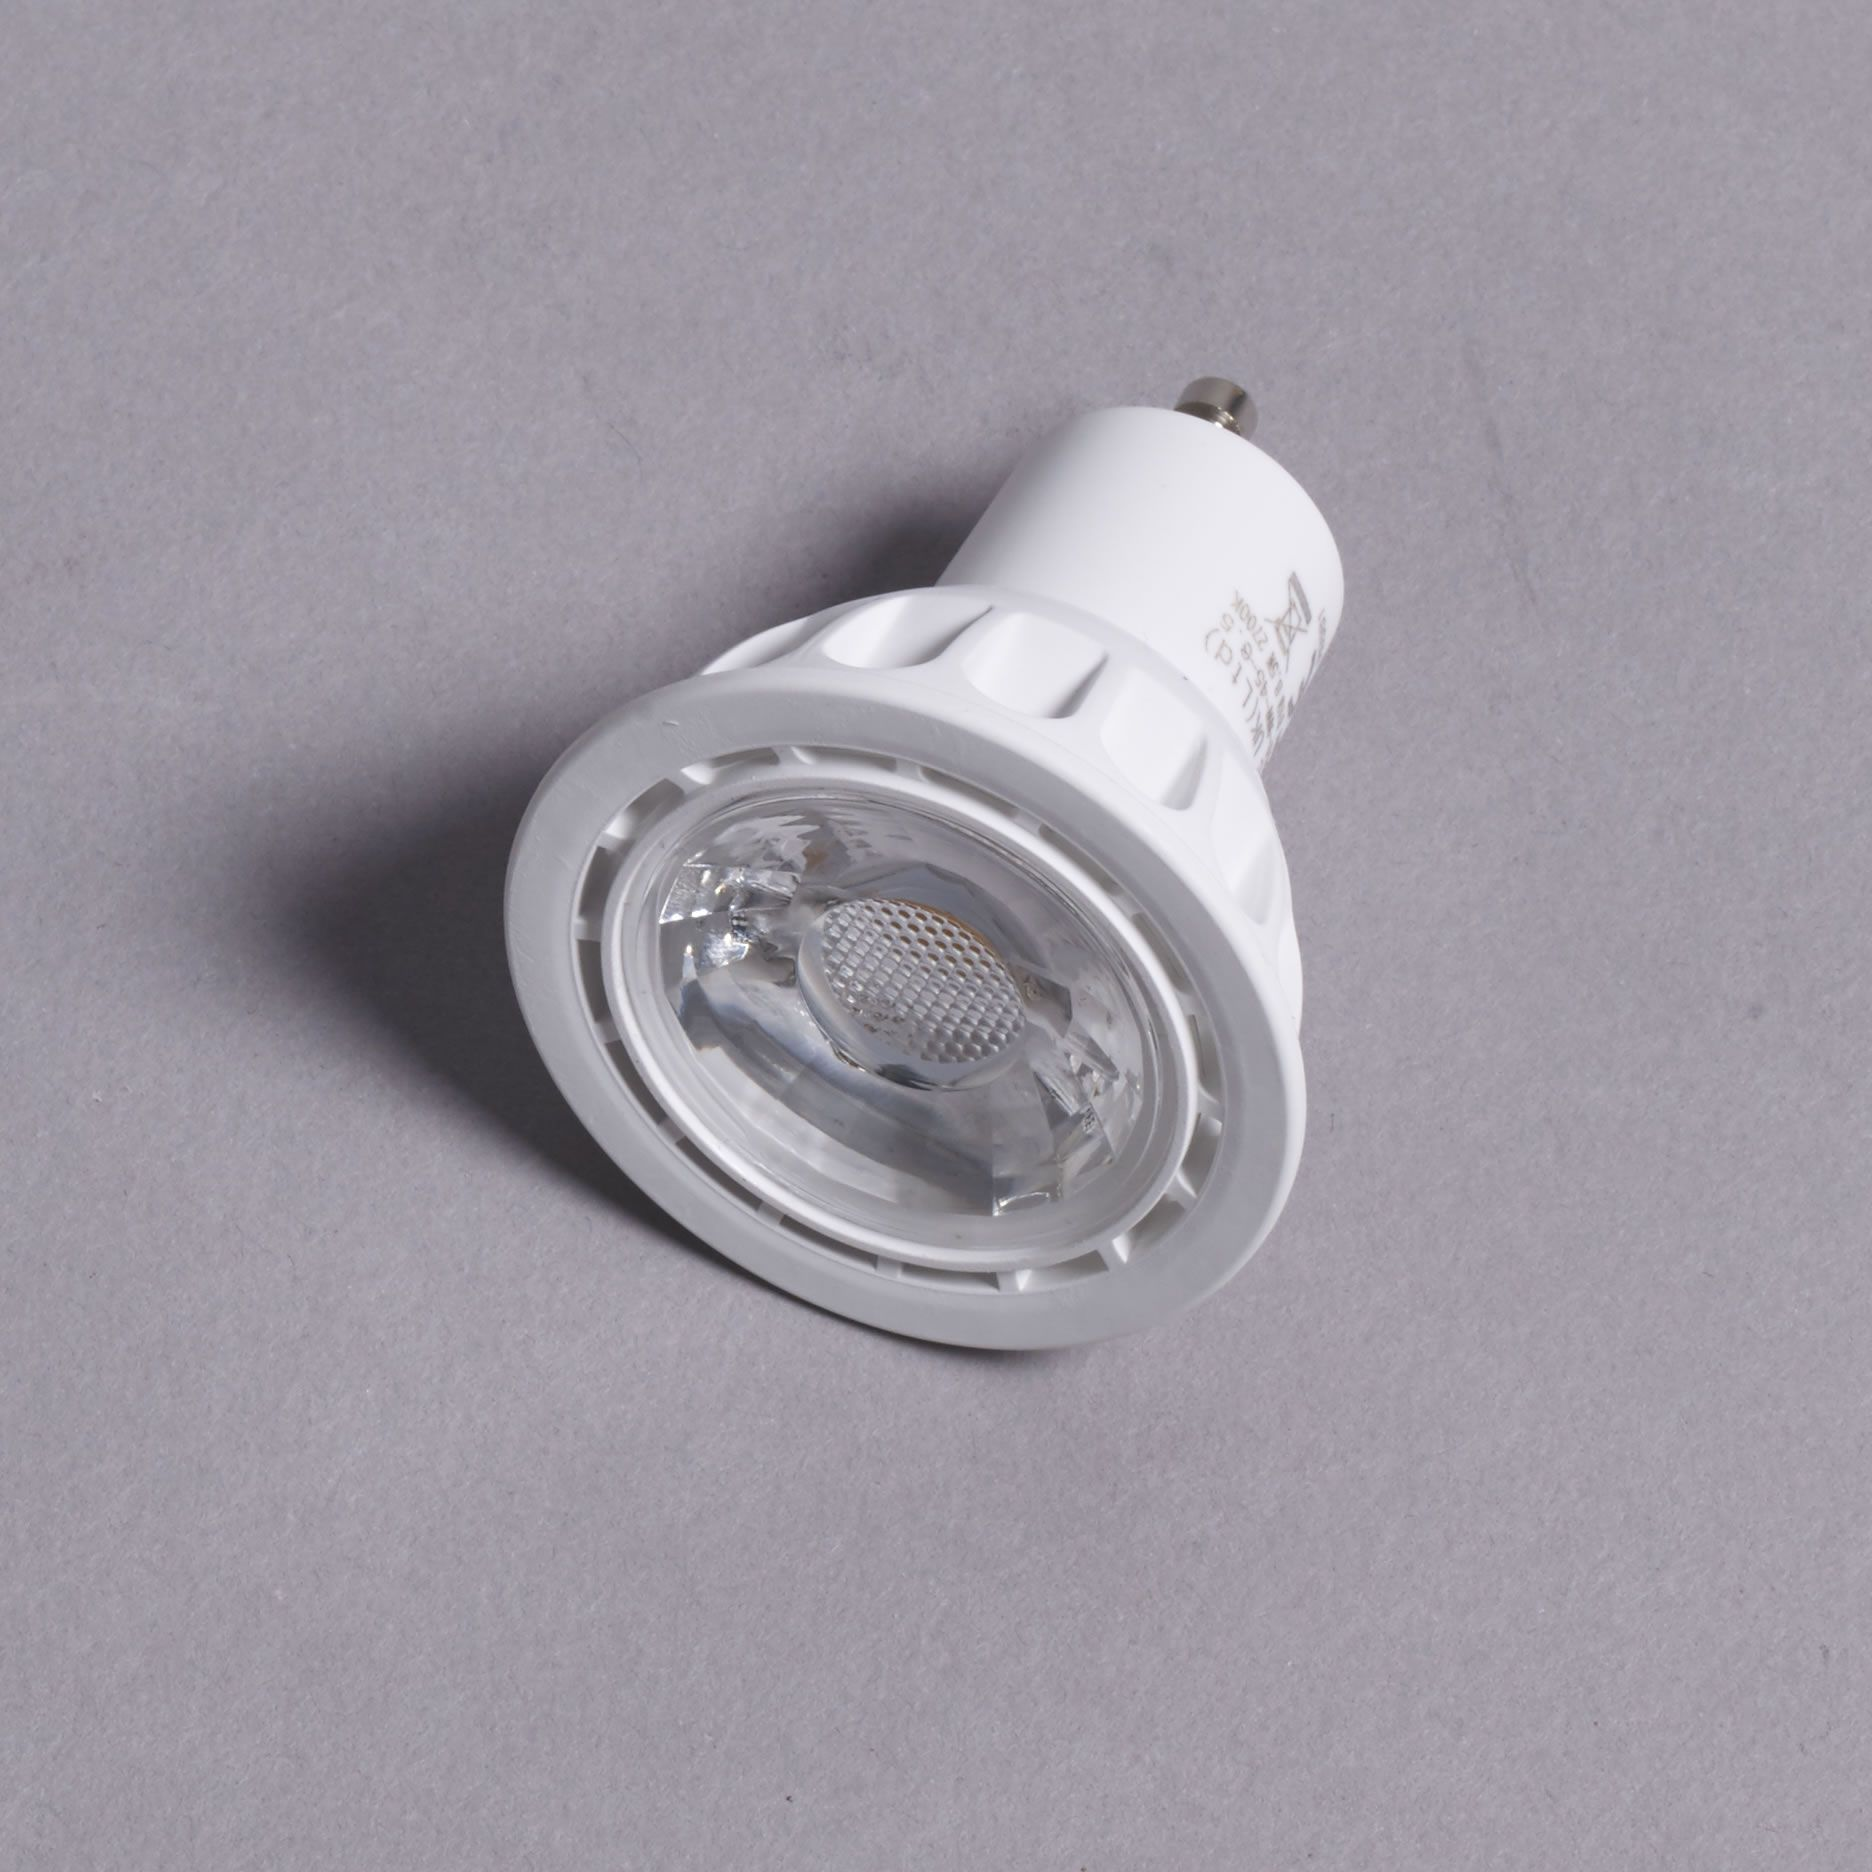 Led Replacement For Halogen Lamps Led Mr16 Gu10 Dimmable Kitchen Led Lighting Halogen Lamp